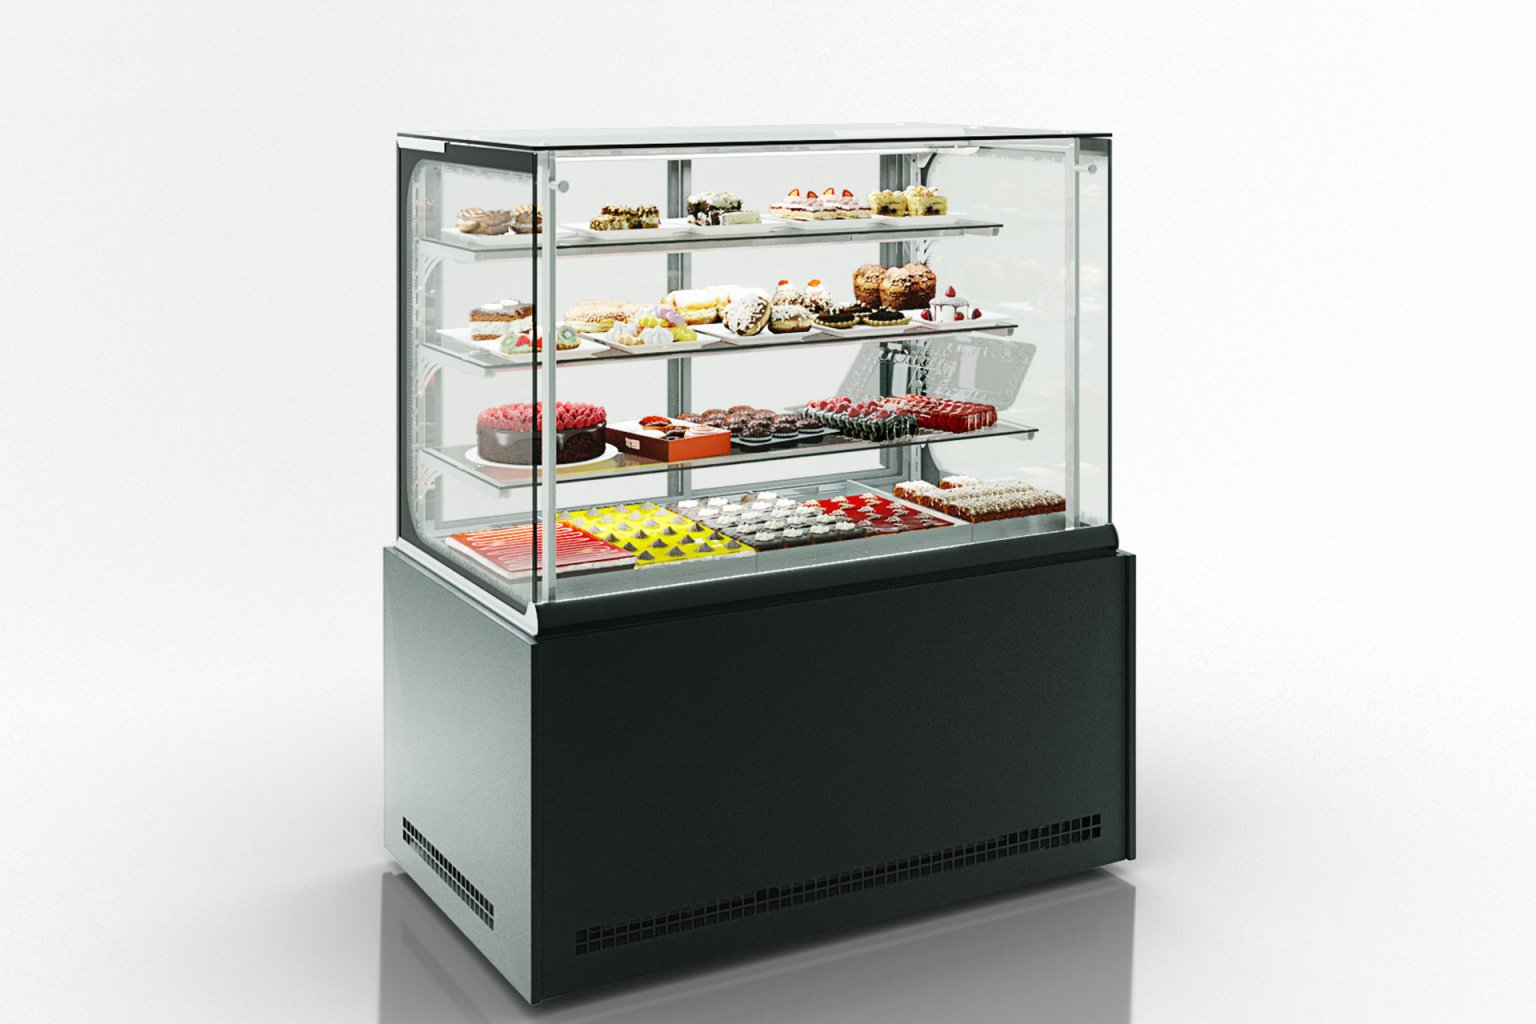 מקרר עוגות DAKOTA AC 085 PATISSERIE OS/SELF A